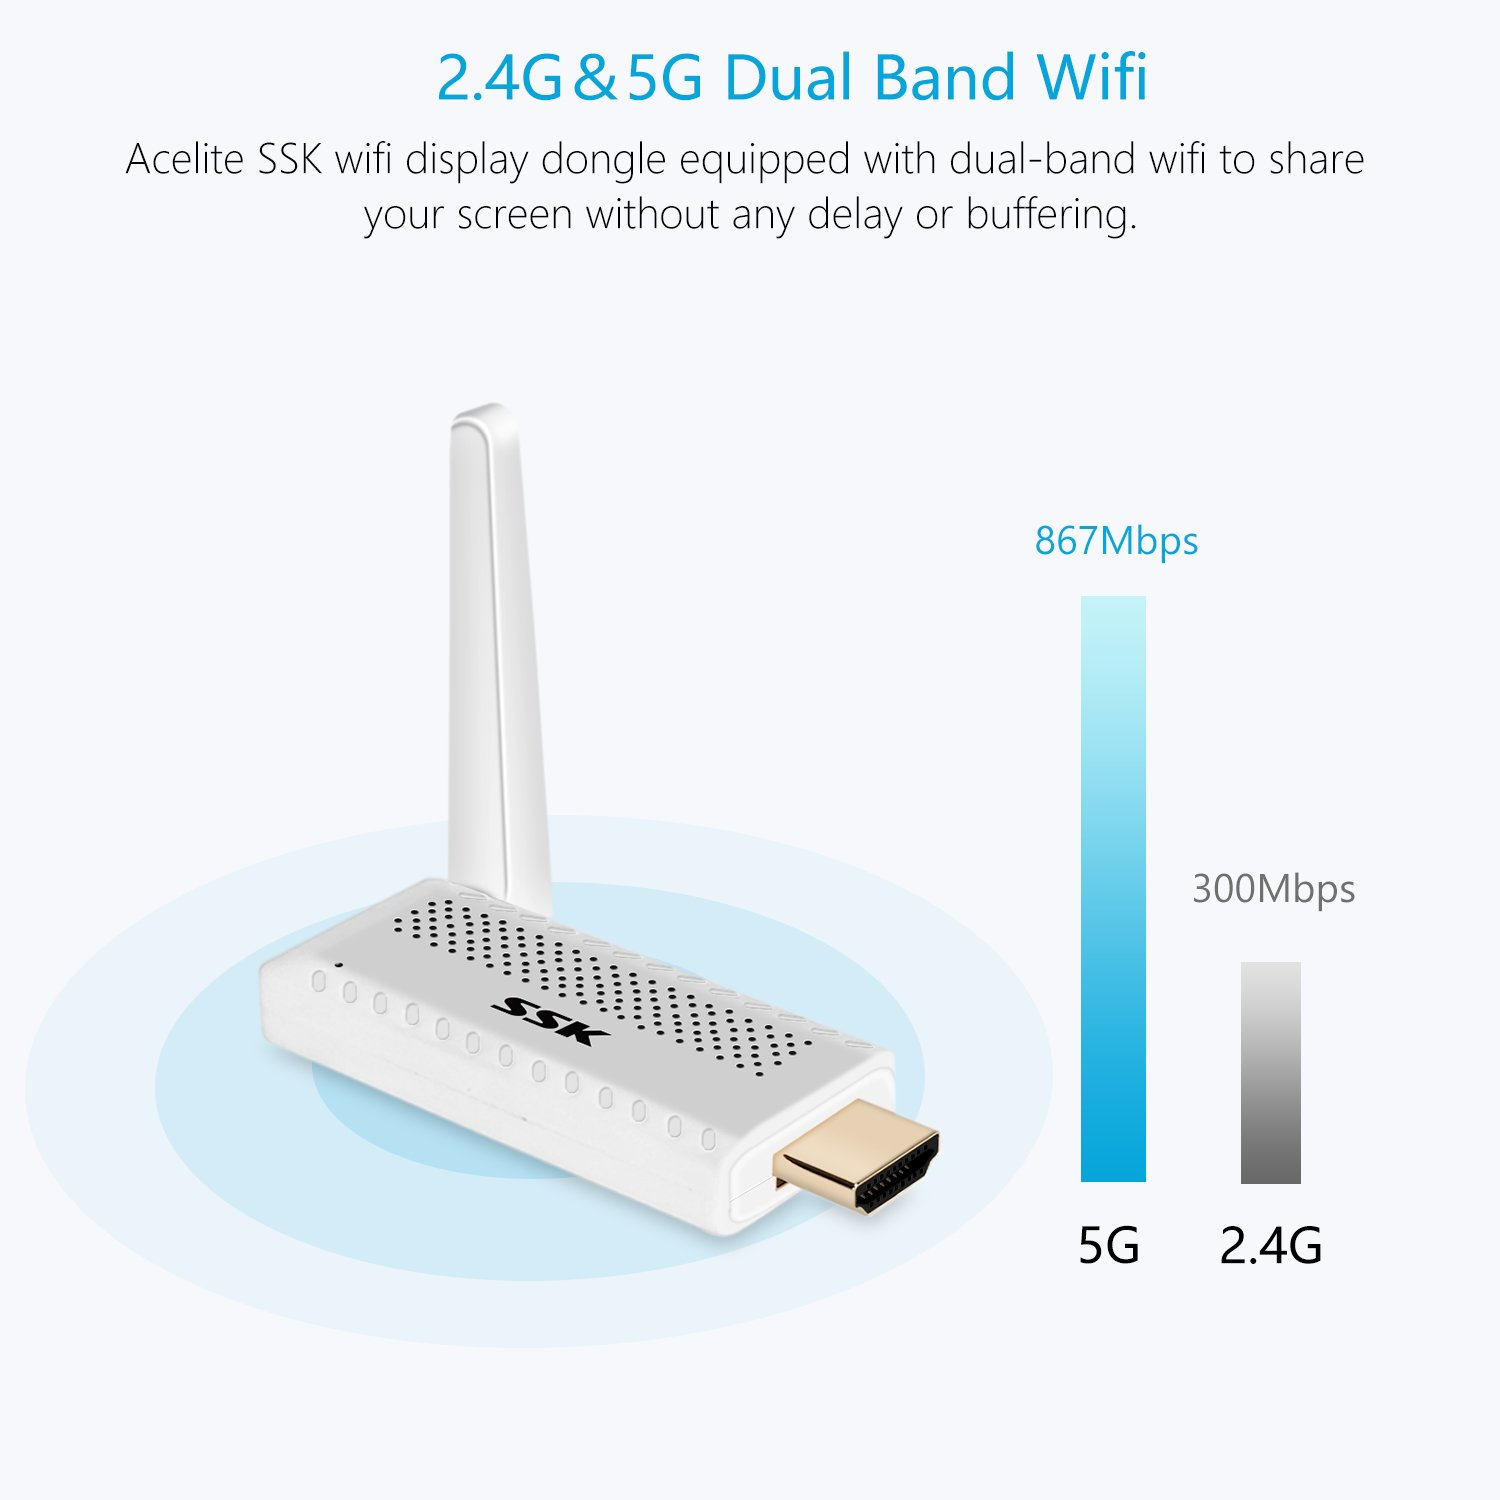 Miracast Dongle/Airplay Dongle/WiFi Display Dongle, 1080P 2.4G/5G Wireless Display Adapter Support HDMI and WIFI Cast Media, Image, PPT to TV, Projector, and Monitor from Android/iOS/Mac/Windows by ACELITE (Image #2)